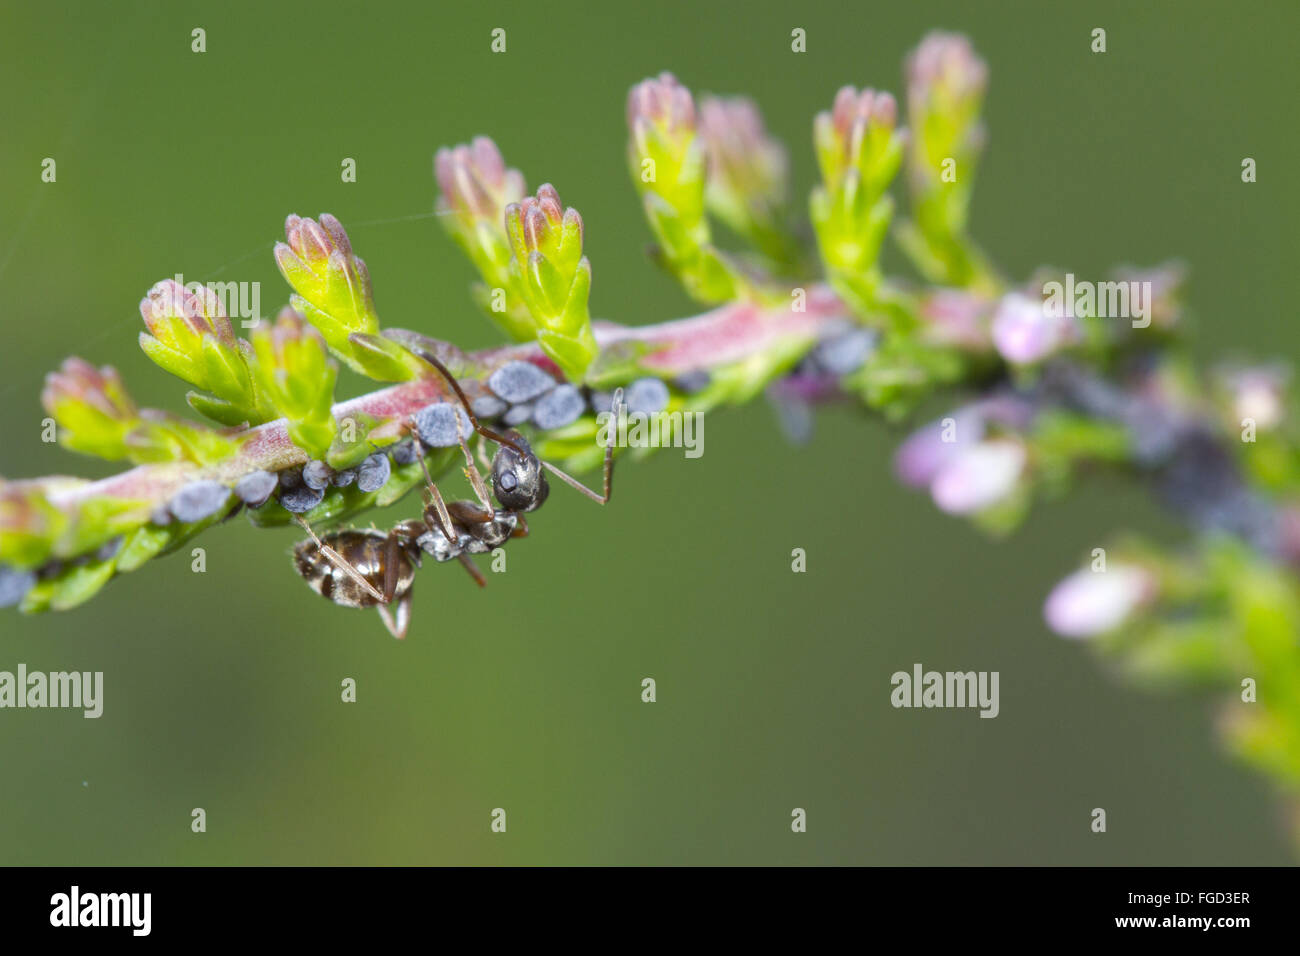 Negro Ant (Formica fusca) adult worker, tending aphids on Common Heather (Calluna vulgaris), Powys, Wales, September Stock Photo